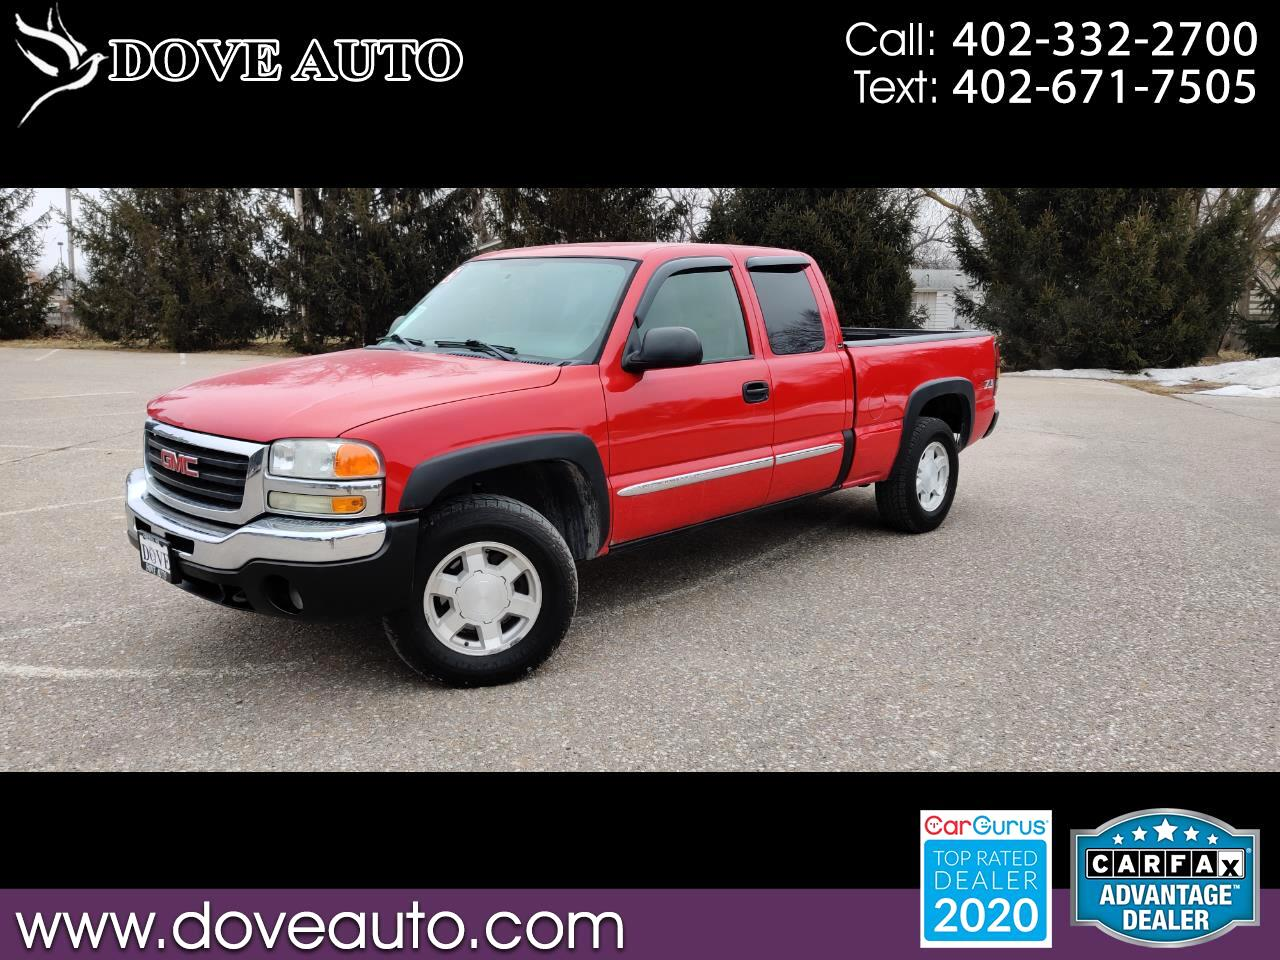 GMC Sierra 1500 SLE Ext. Cab Short Bed 4WD 2005